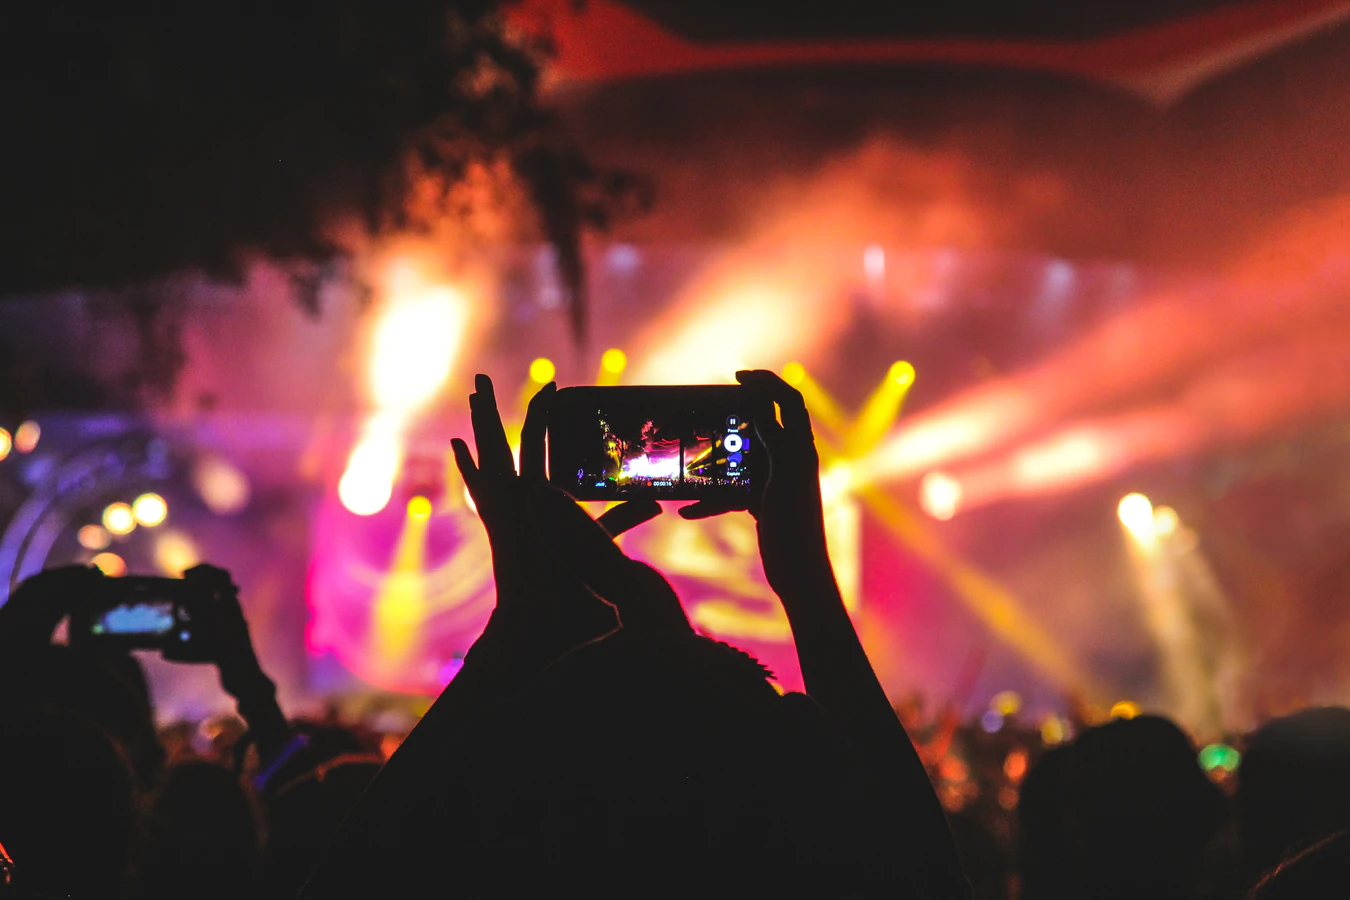 Concert goer taking video of stage on smartphone